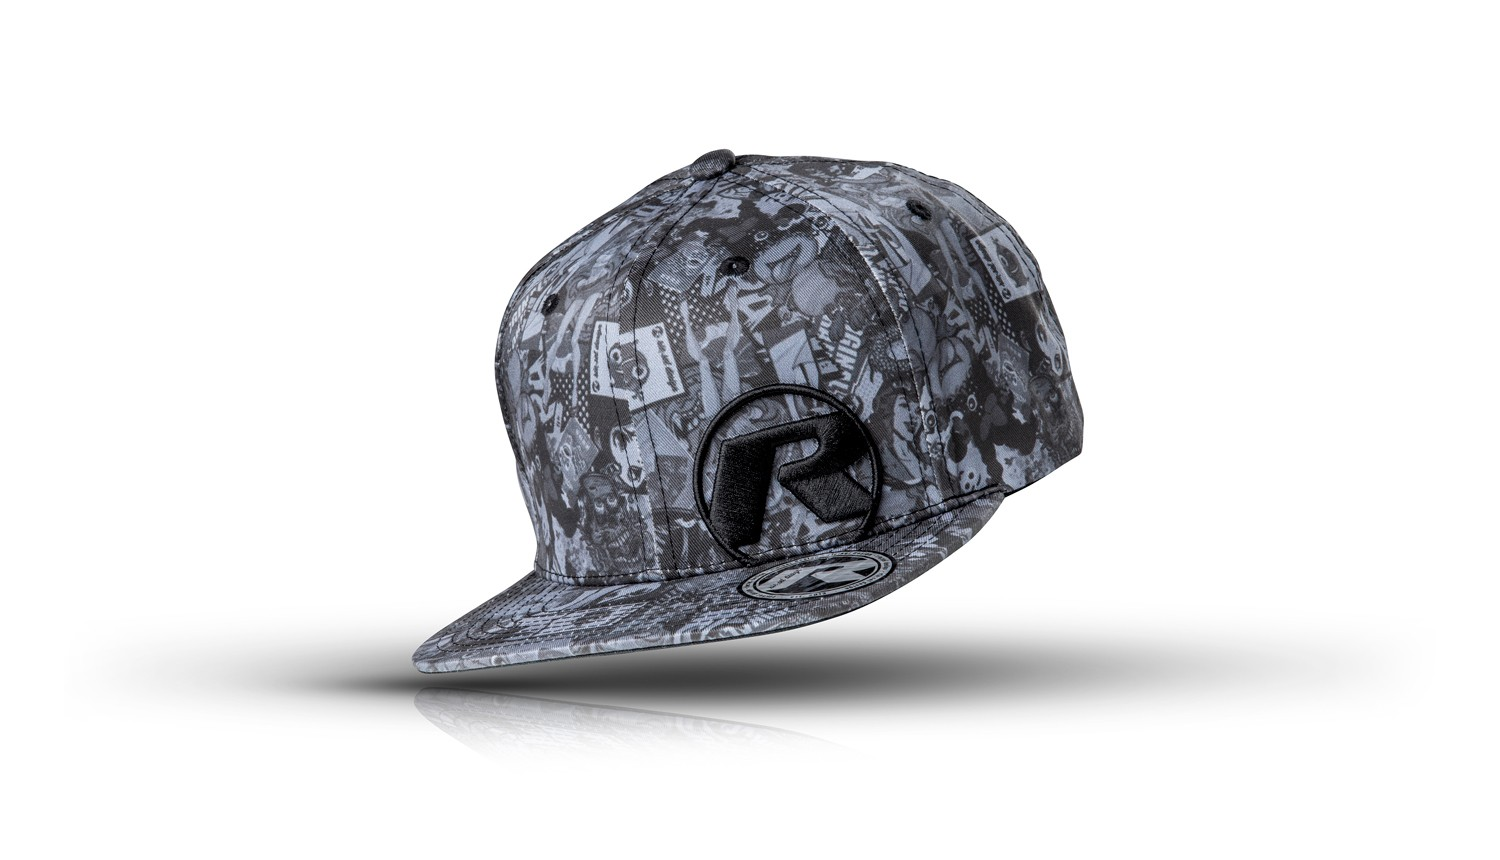 riesel-design-basecap-snapback-the-crown-stickerbomb-ultra-black-1